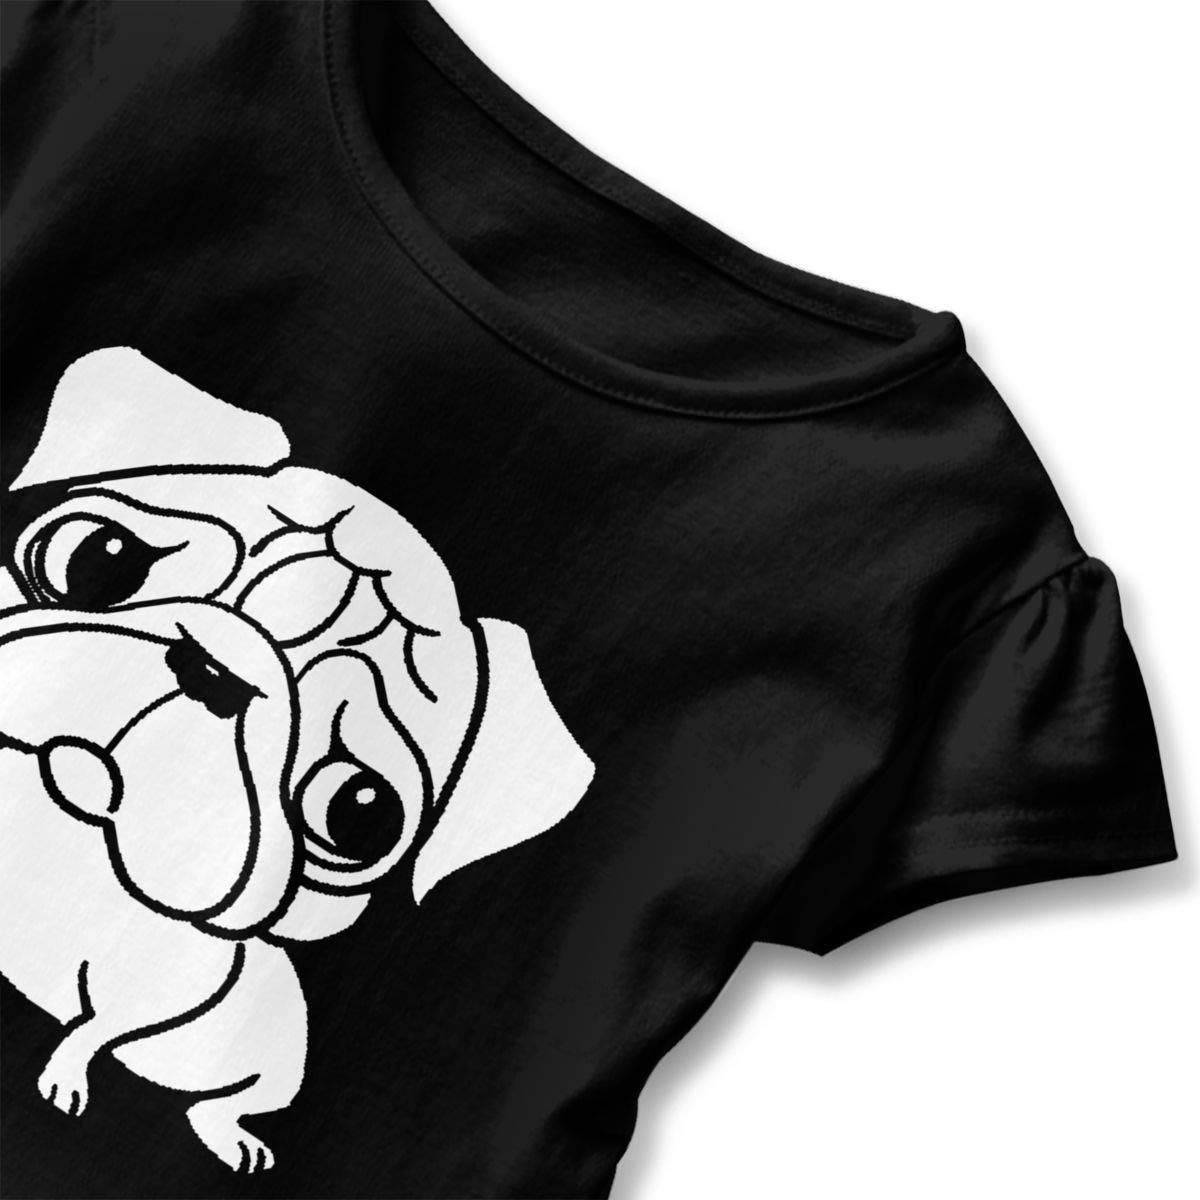 JVNSS Pug Dog Shirt Funny Baby Girls Flounced T Shirts Clothes for 2-6T Kids Girls